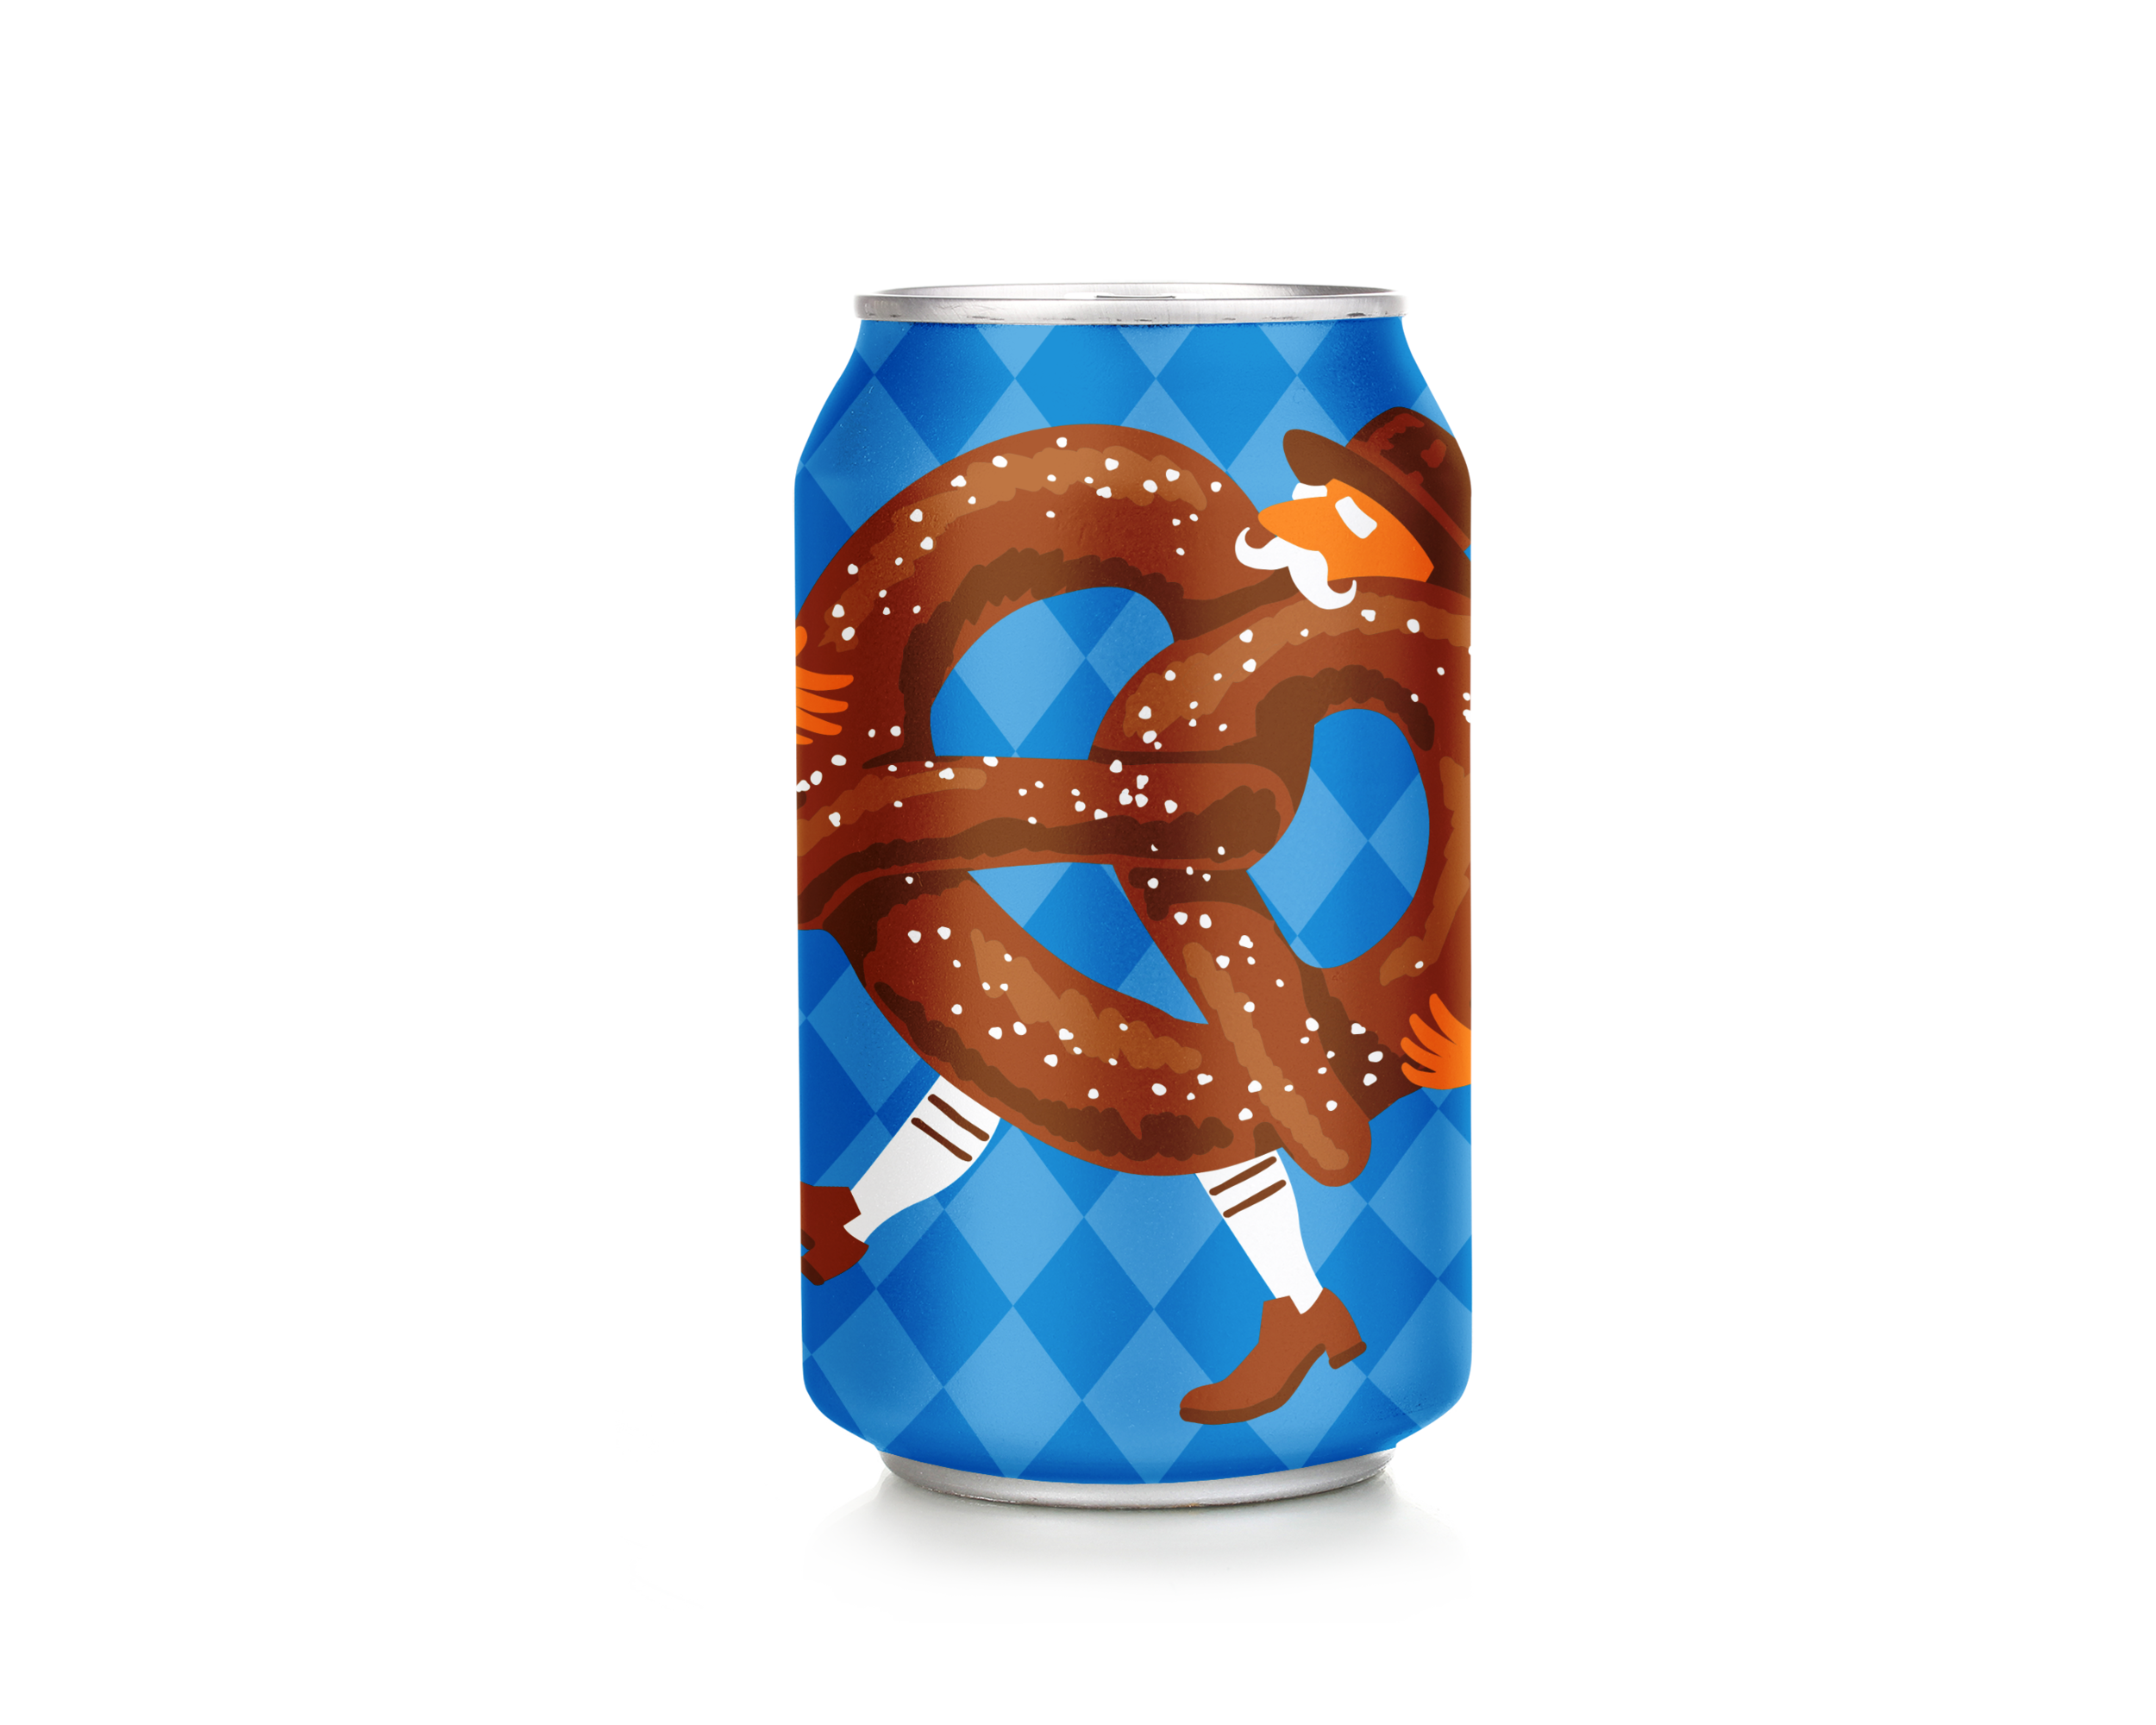 Fest Beer - Marzen5.5% ABVOur fall seasonal is crisp and malty inspired by classic Oktoberfest beers. Brewed with traditional European Noble hops, it's the perfect beer to celebrate the return of Fall.